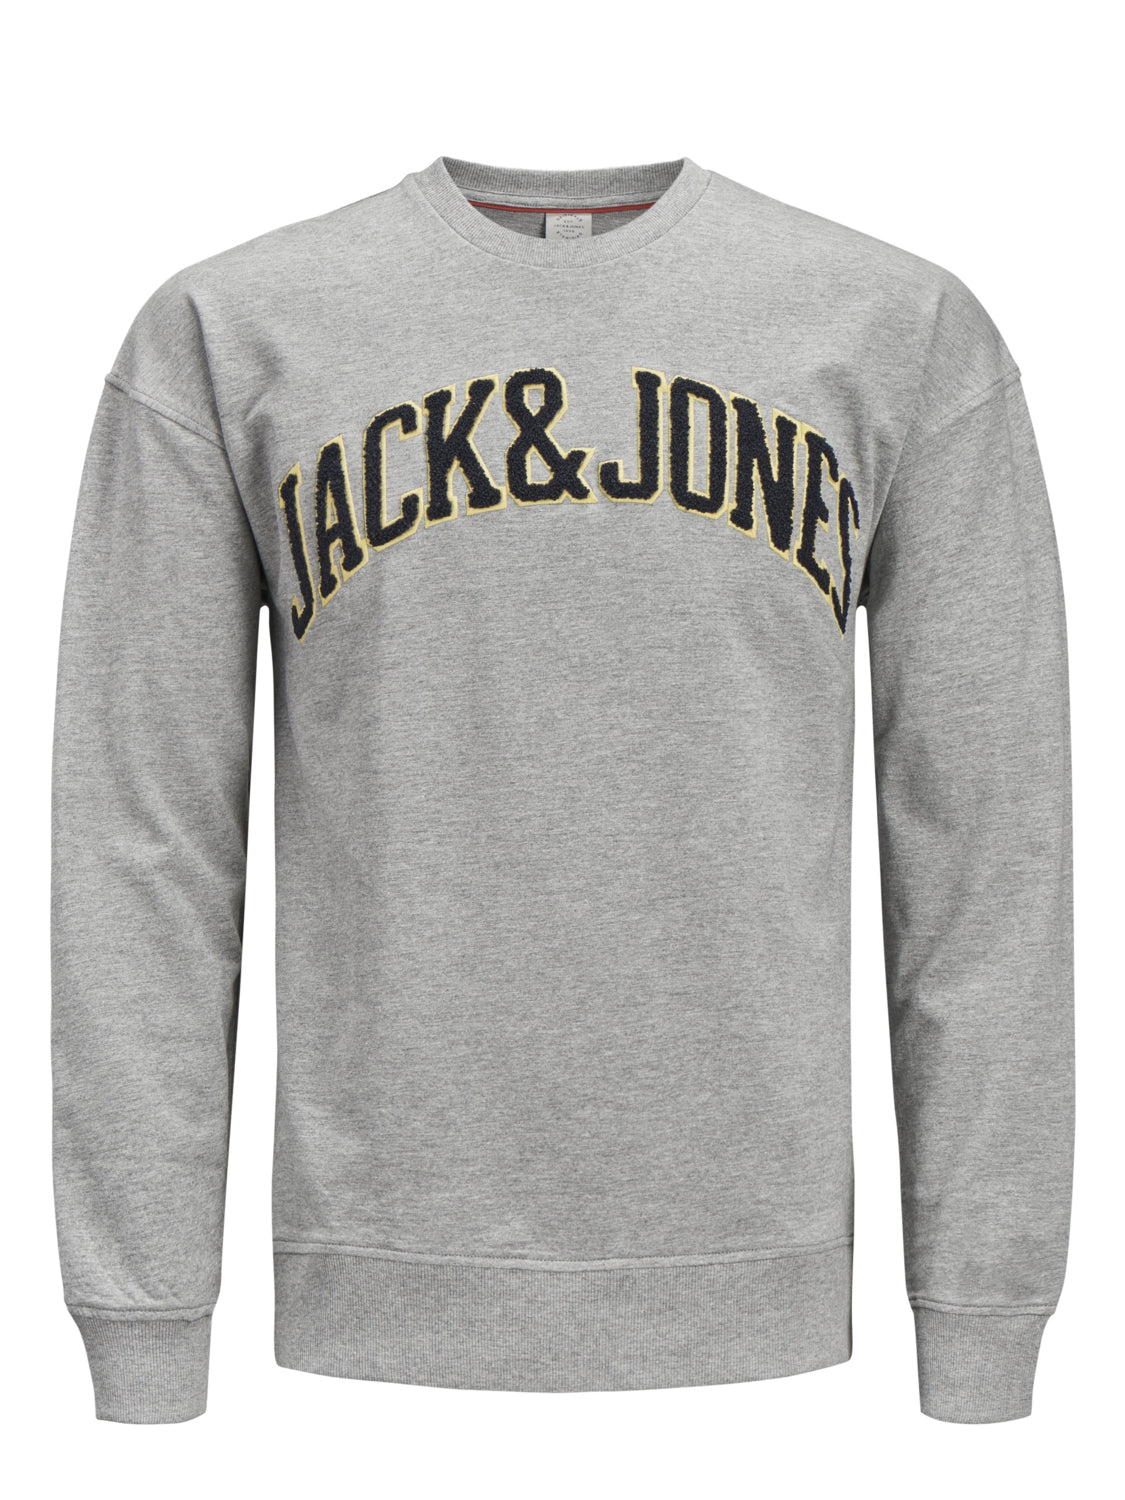 152336a5729f Jack jones clothing tops sweatshirts snake grey vlone friends logo shirt  jpg 1125x1500 Aliexpress clothing vlone